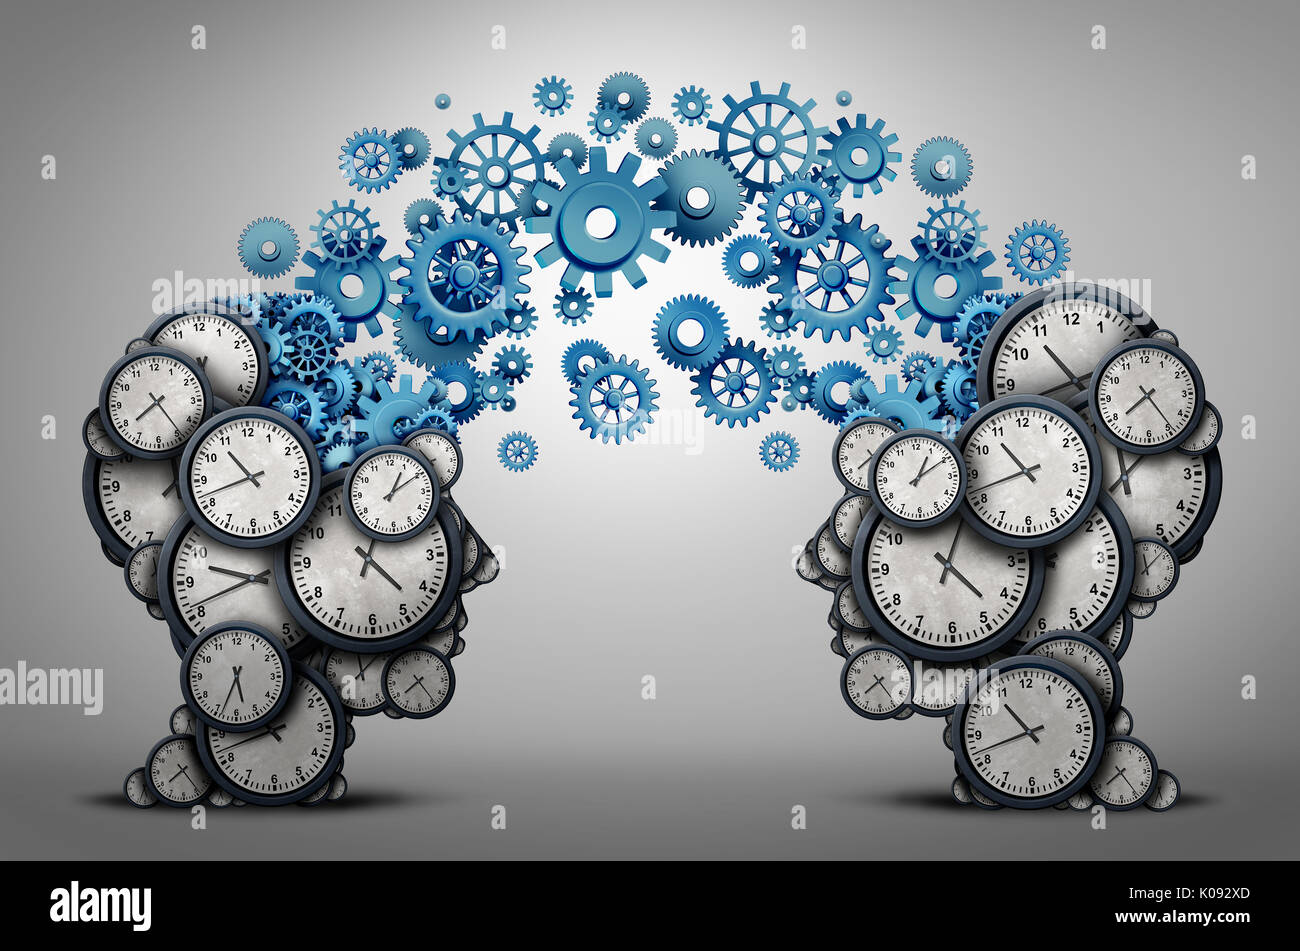 Business time planning partnership as two people heads made of clock cog and gear objects linked together as an organizing a meeting and schedule symb - Stock Image